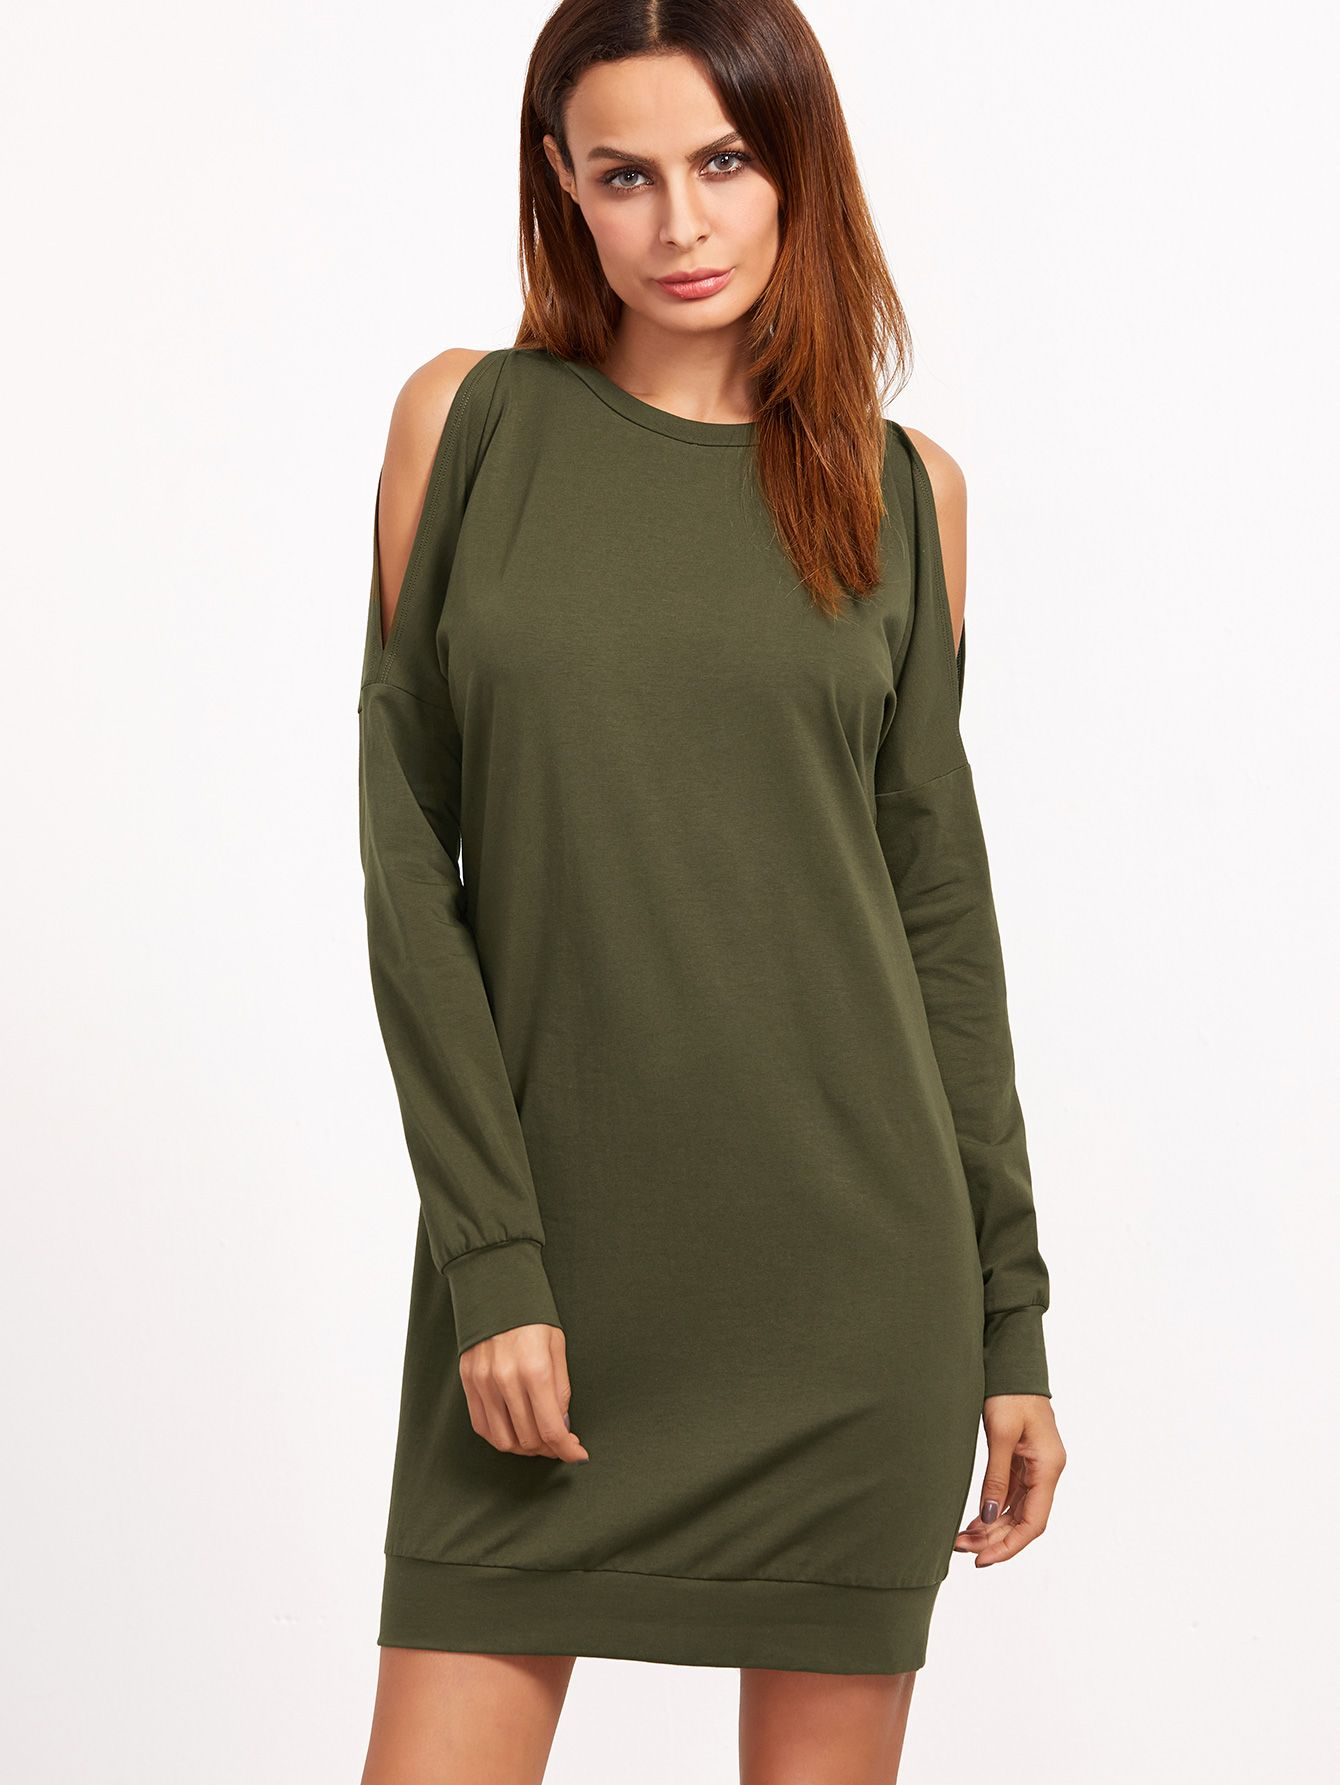 Buy it now. Olive Green Open Shoulder Sweatshirt Dress. Green Casual Cotton Cold Shoulder Long Sleeve Shift Short Plain Fabric has some stretch Spring Fall Sweatshirt Dresses. , vestidoinformal, casual, camiseta, playeros, informales, túnica, estilocamiseta, camisola, vestidodealgodón, vestidosdealgodón, verano, informal, playa, playero, capa, capas, vestidobabydoll, camisole, túnica, shift, pleat, pleated, drape, t-shape, daisy, foldedshoulder, summer, loosefit, tunictop, swing, day, off...